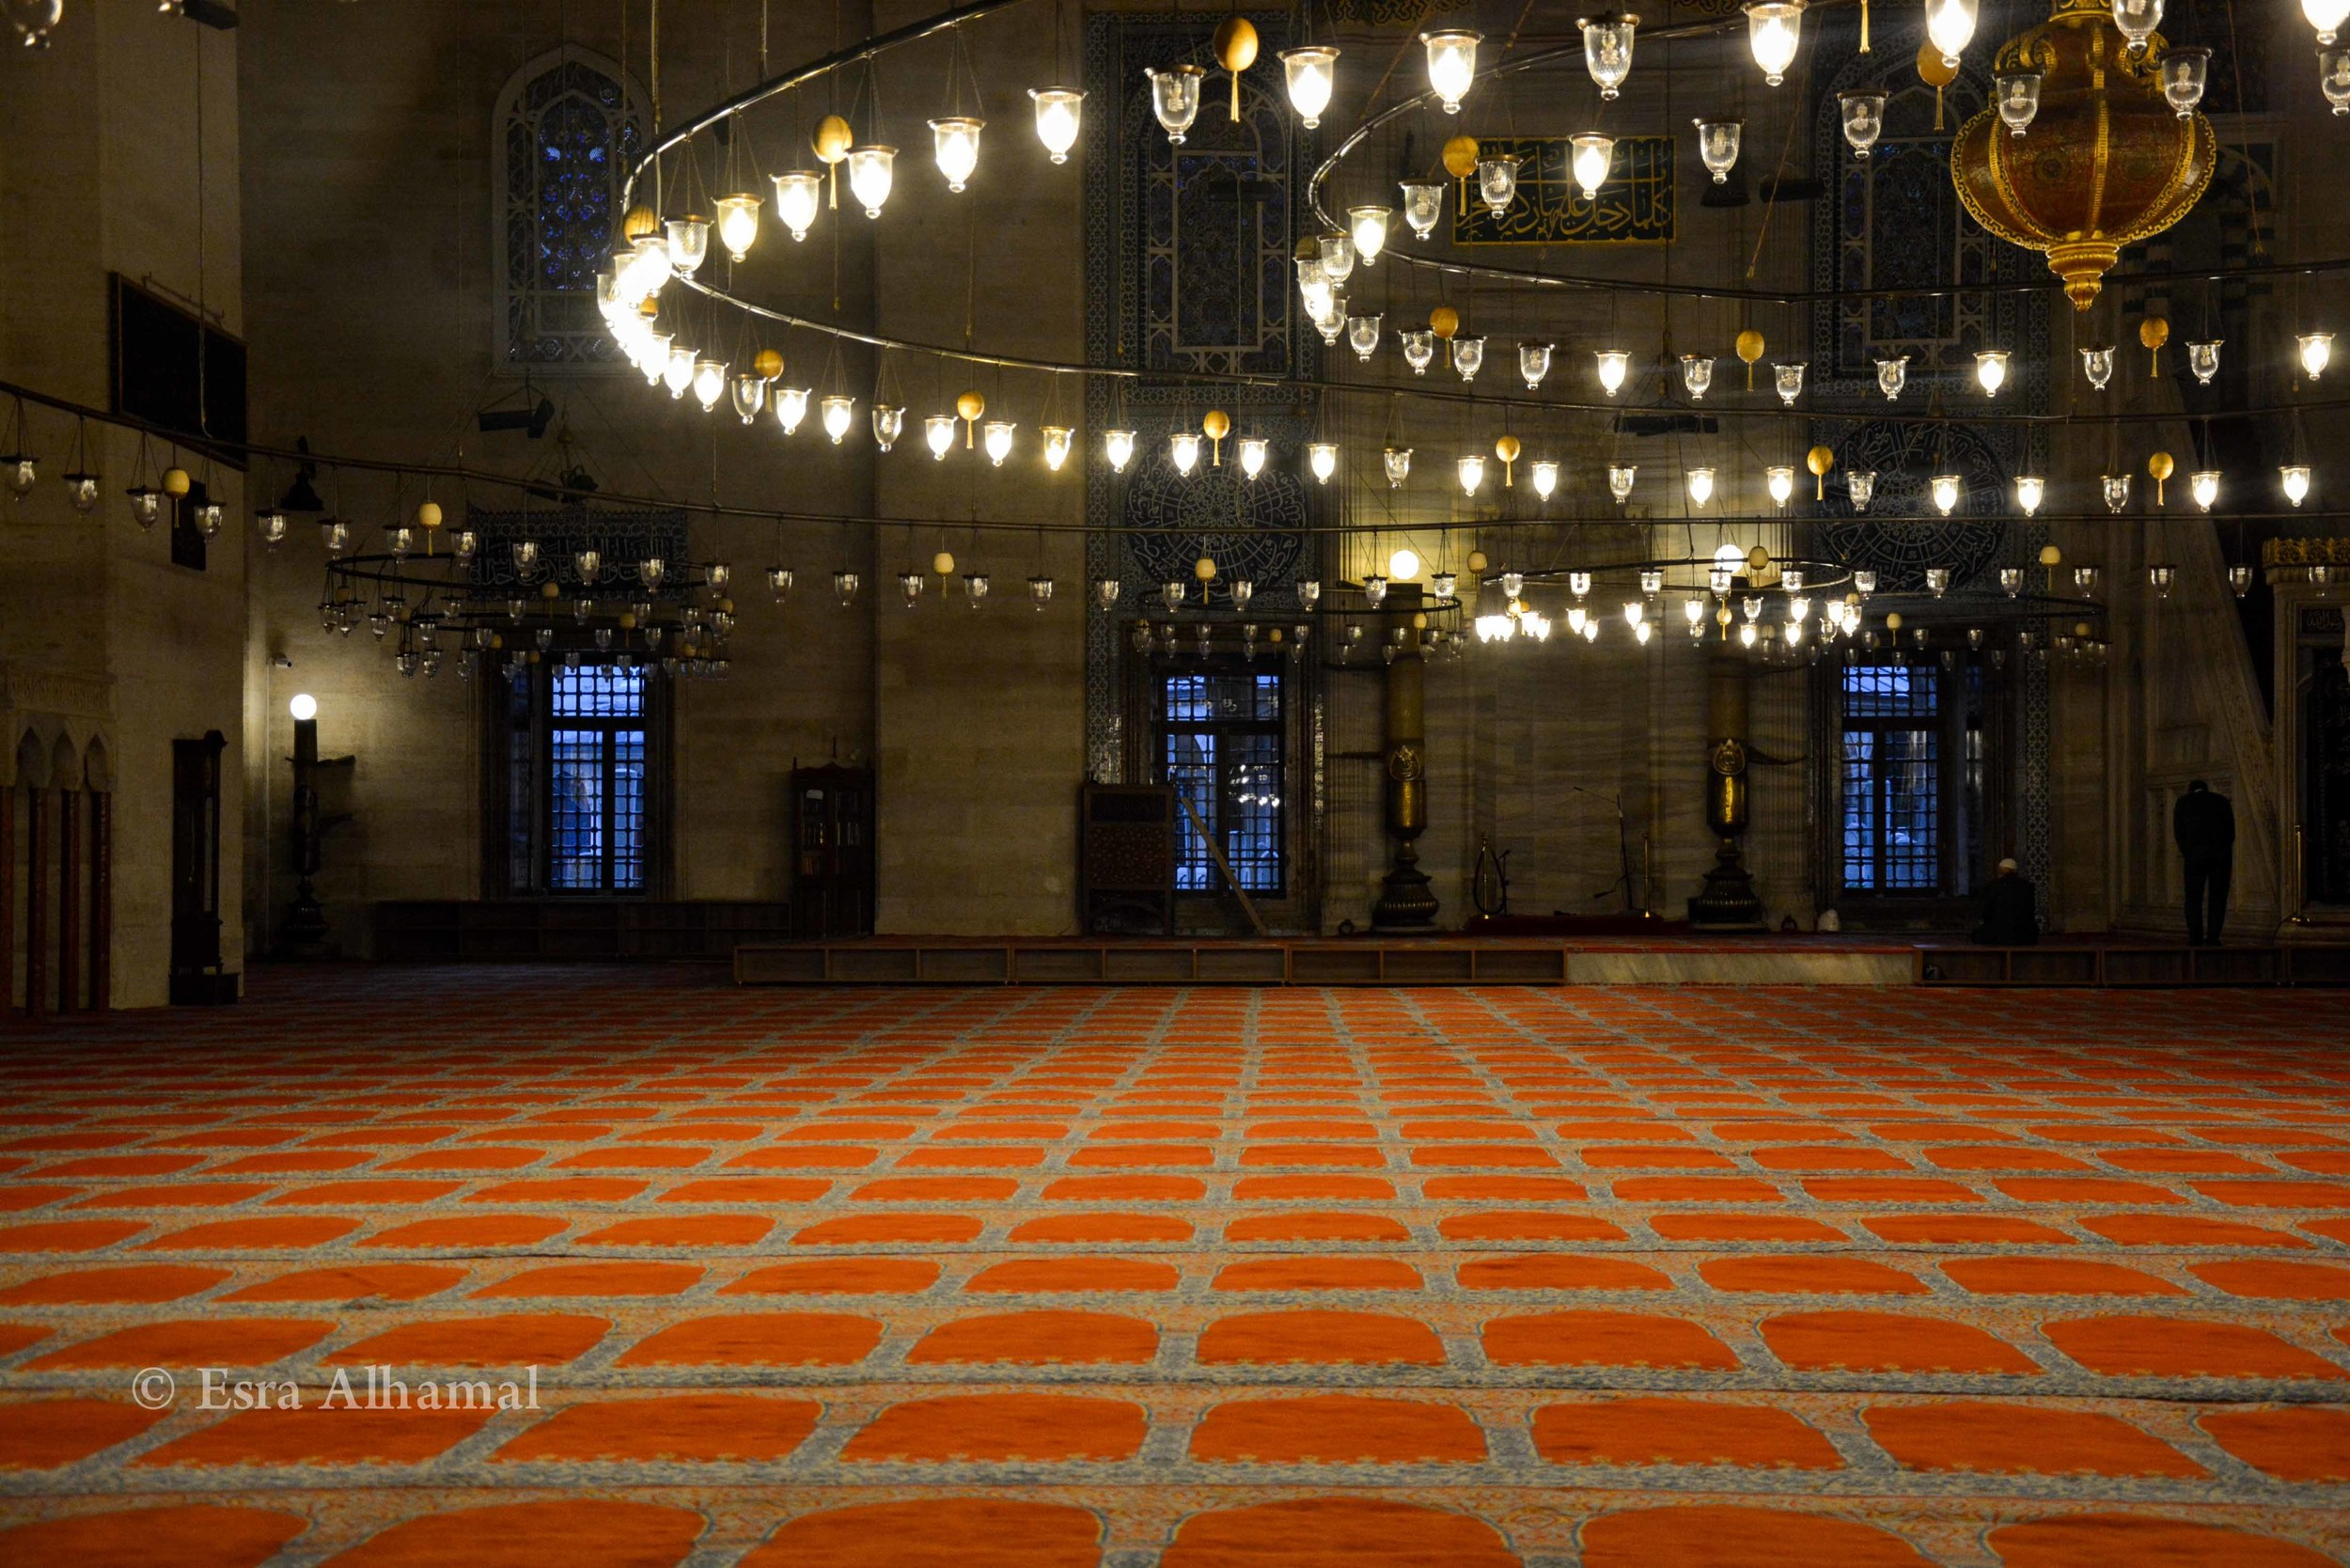 The grand lights in Sulymania mosque